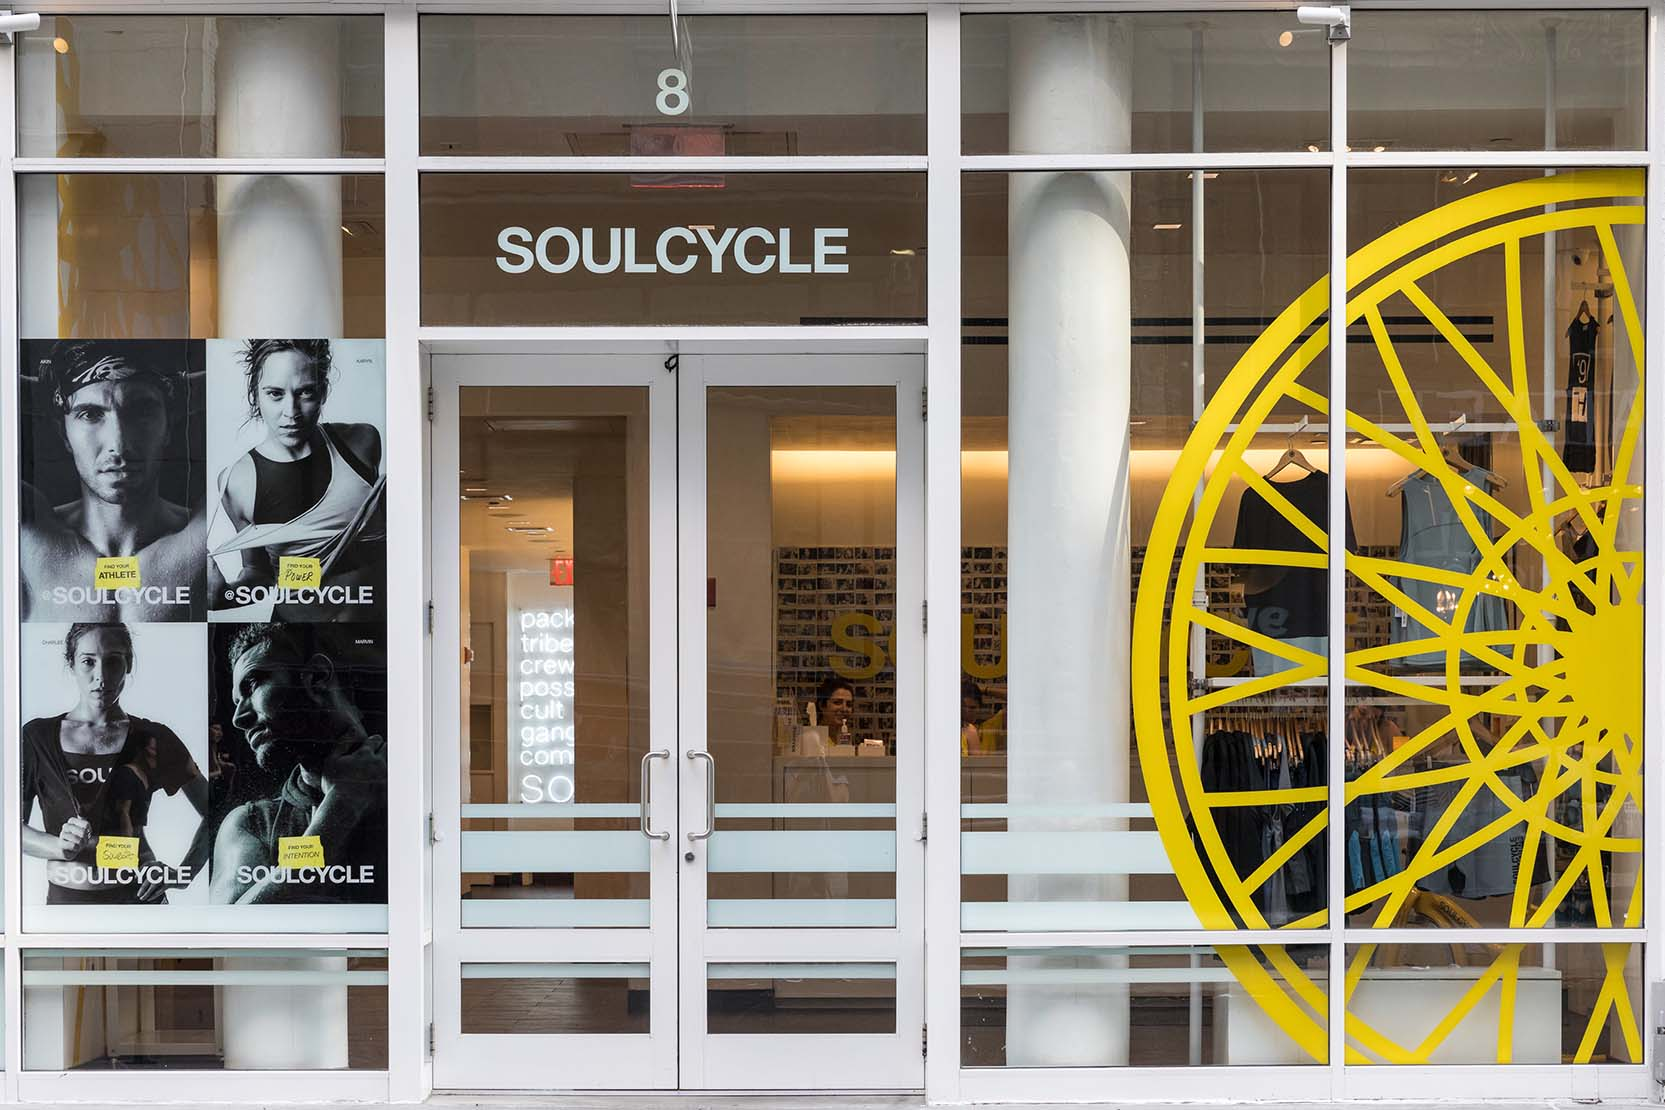 IF_Celeste_SoulCycle_008